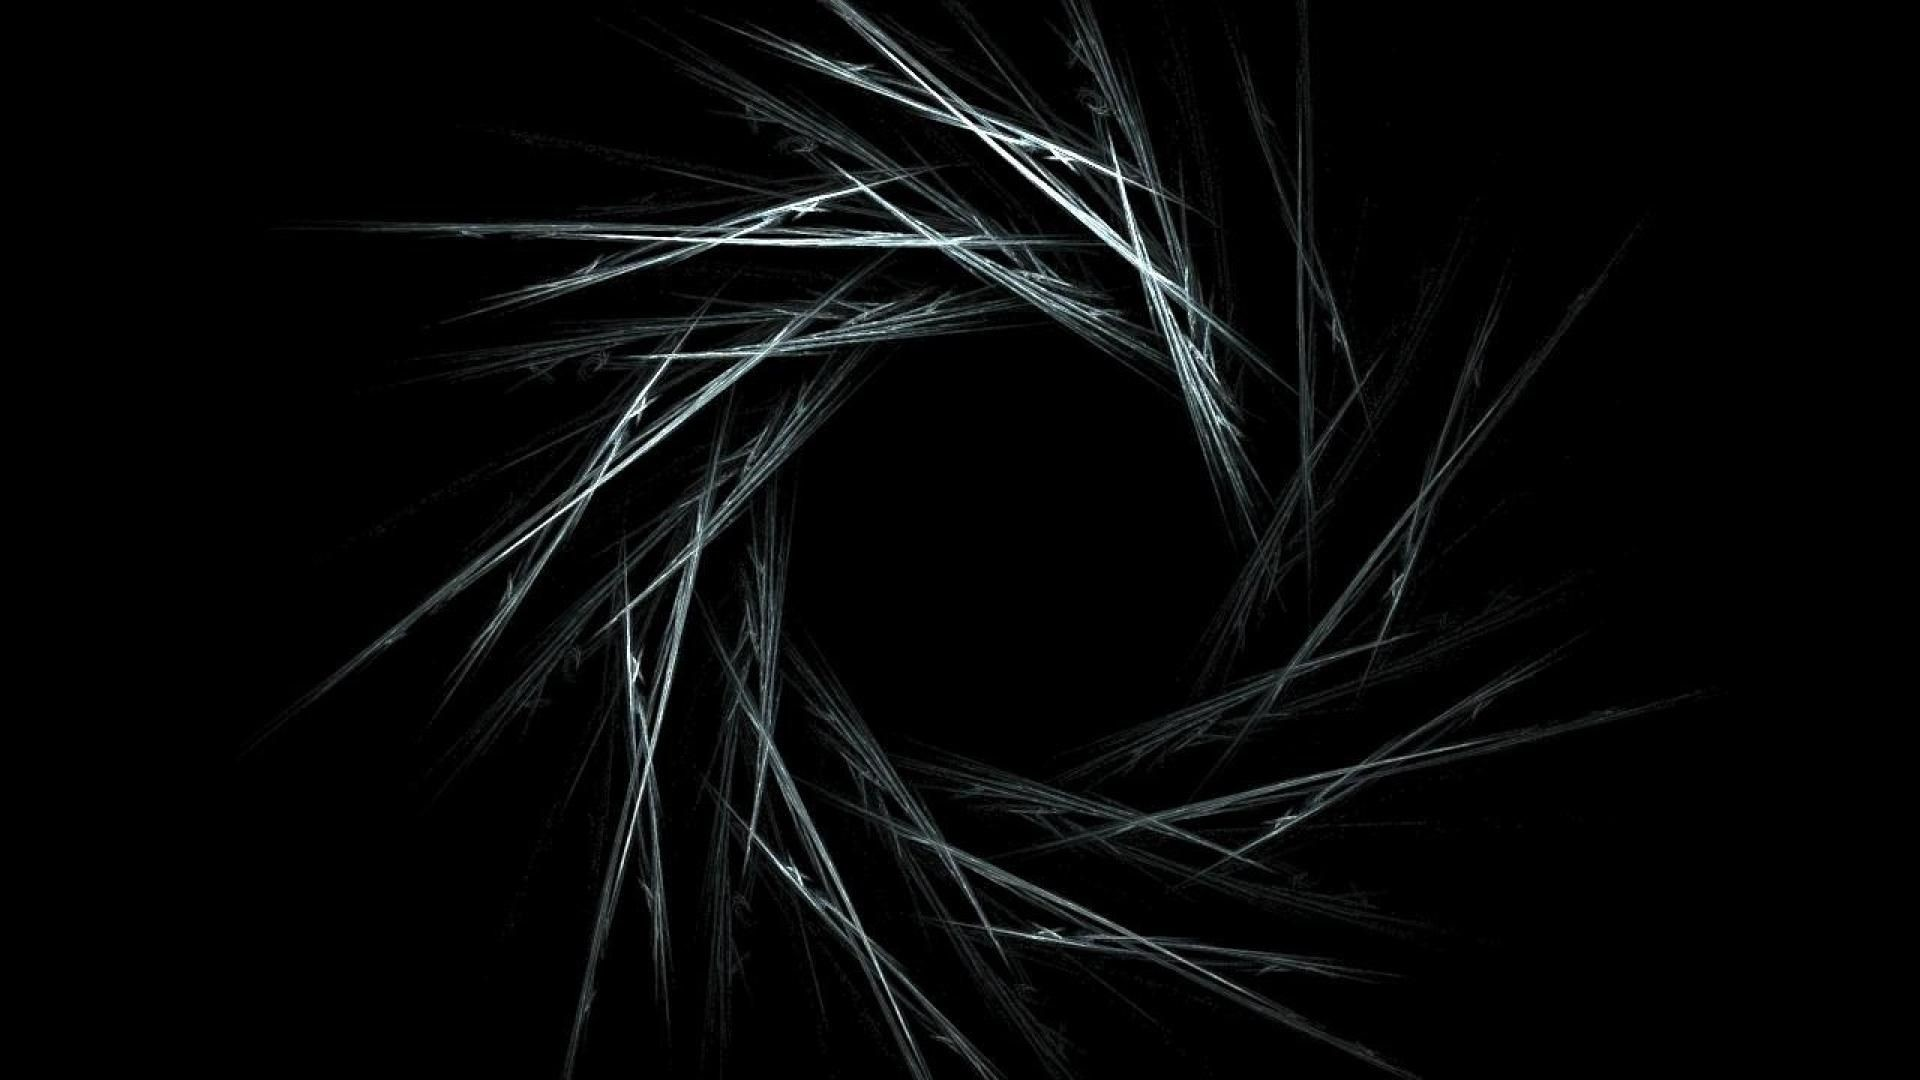 Black Hd Wallpapers For Android 84 Images